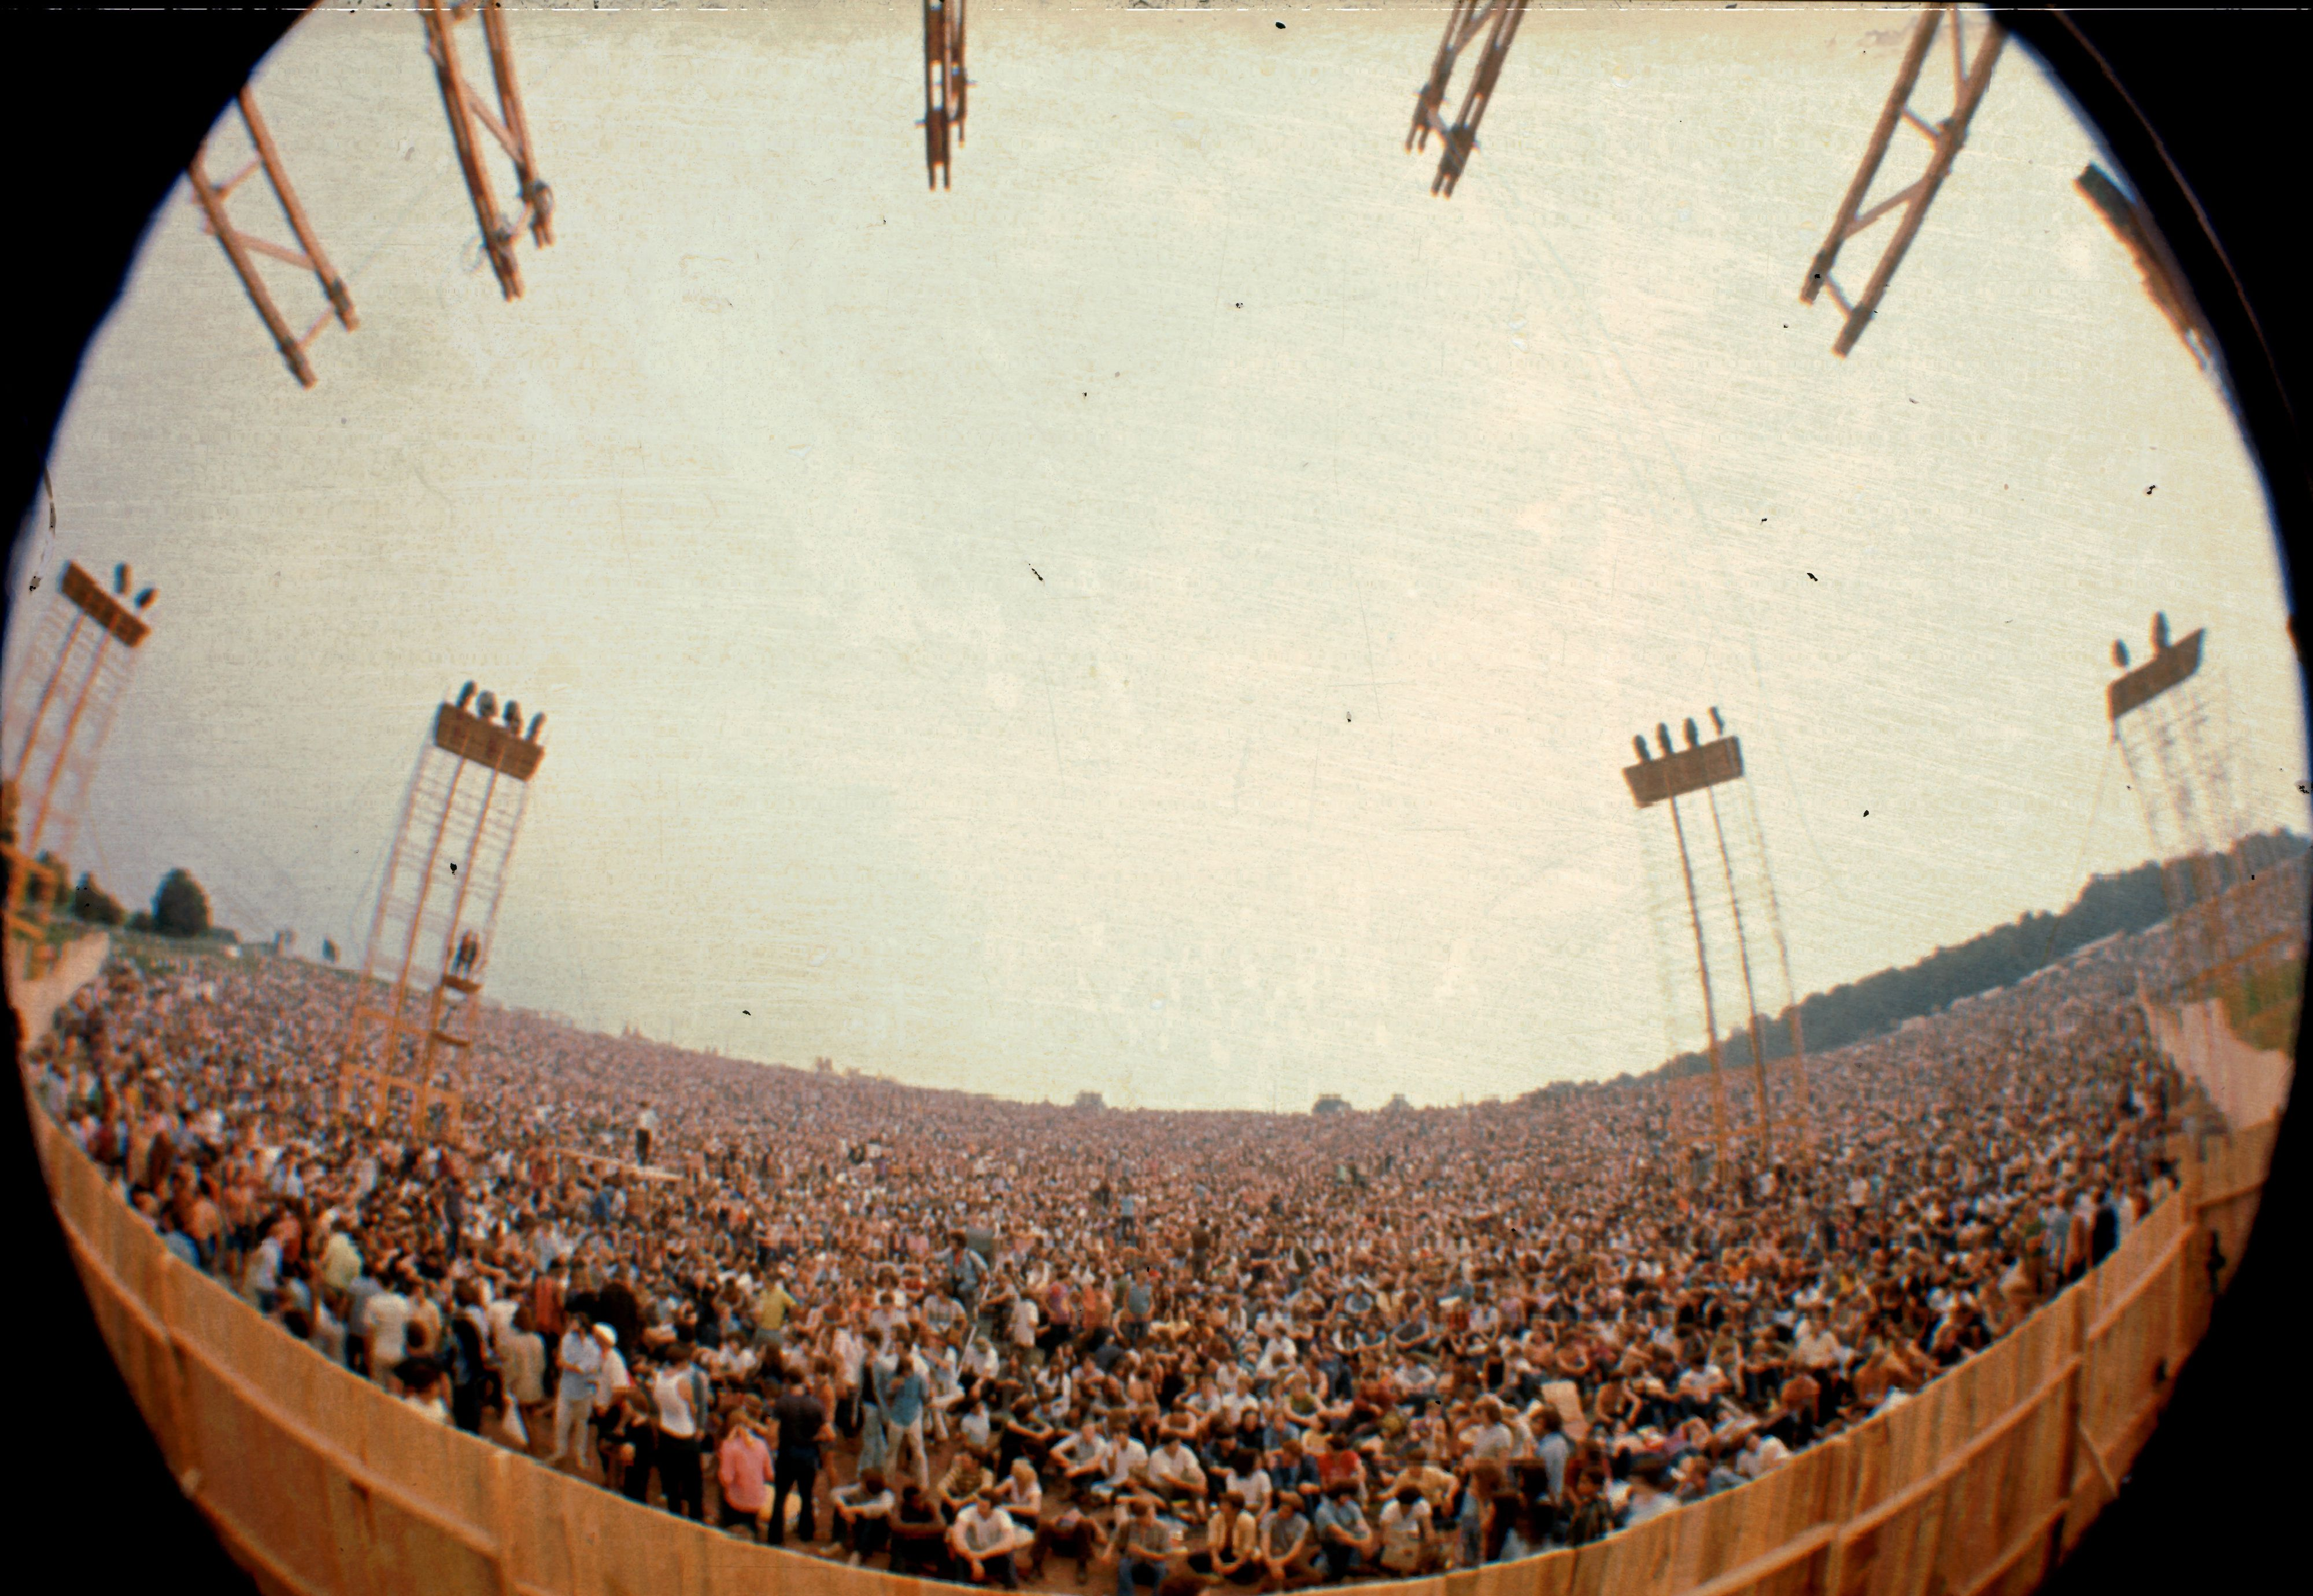 World Tech Auto >> Where Are the Original Woodstock 1969 Performers Now?